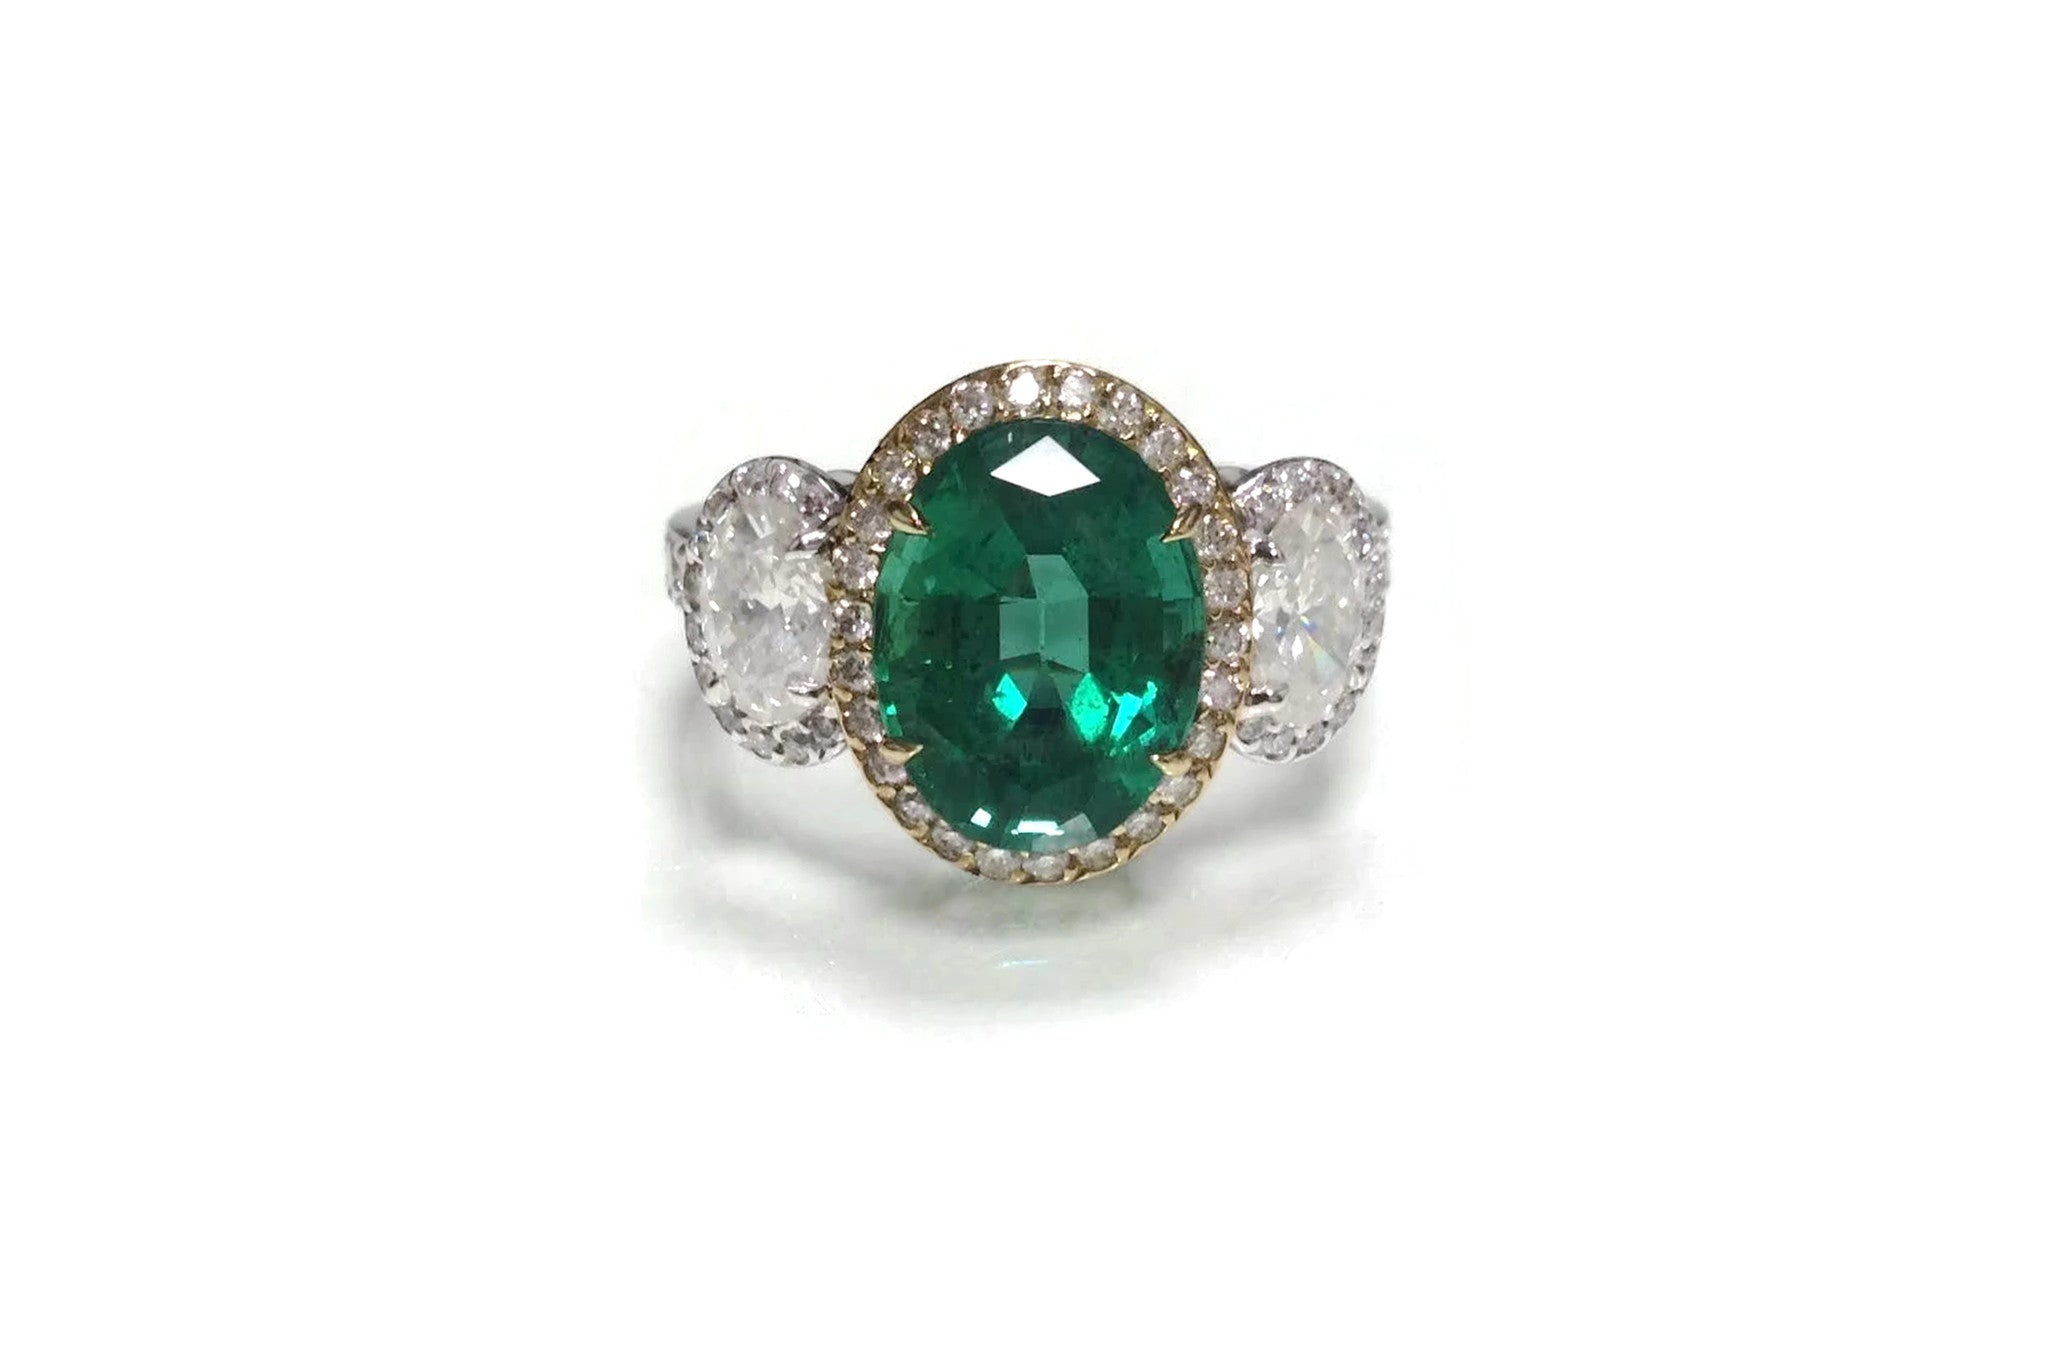 AF Jewelers One of Kind Ring with Oval Zambian Emerald and Diamonds, 18k Yellow and White Gold.